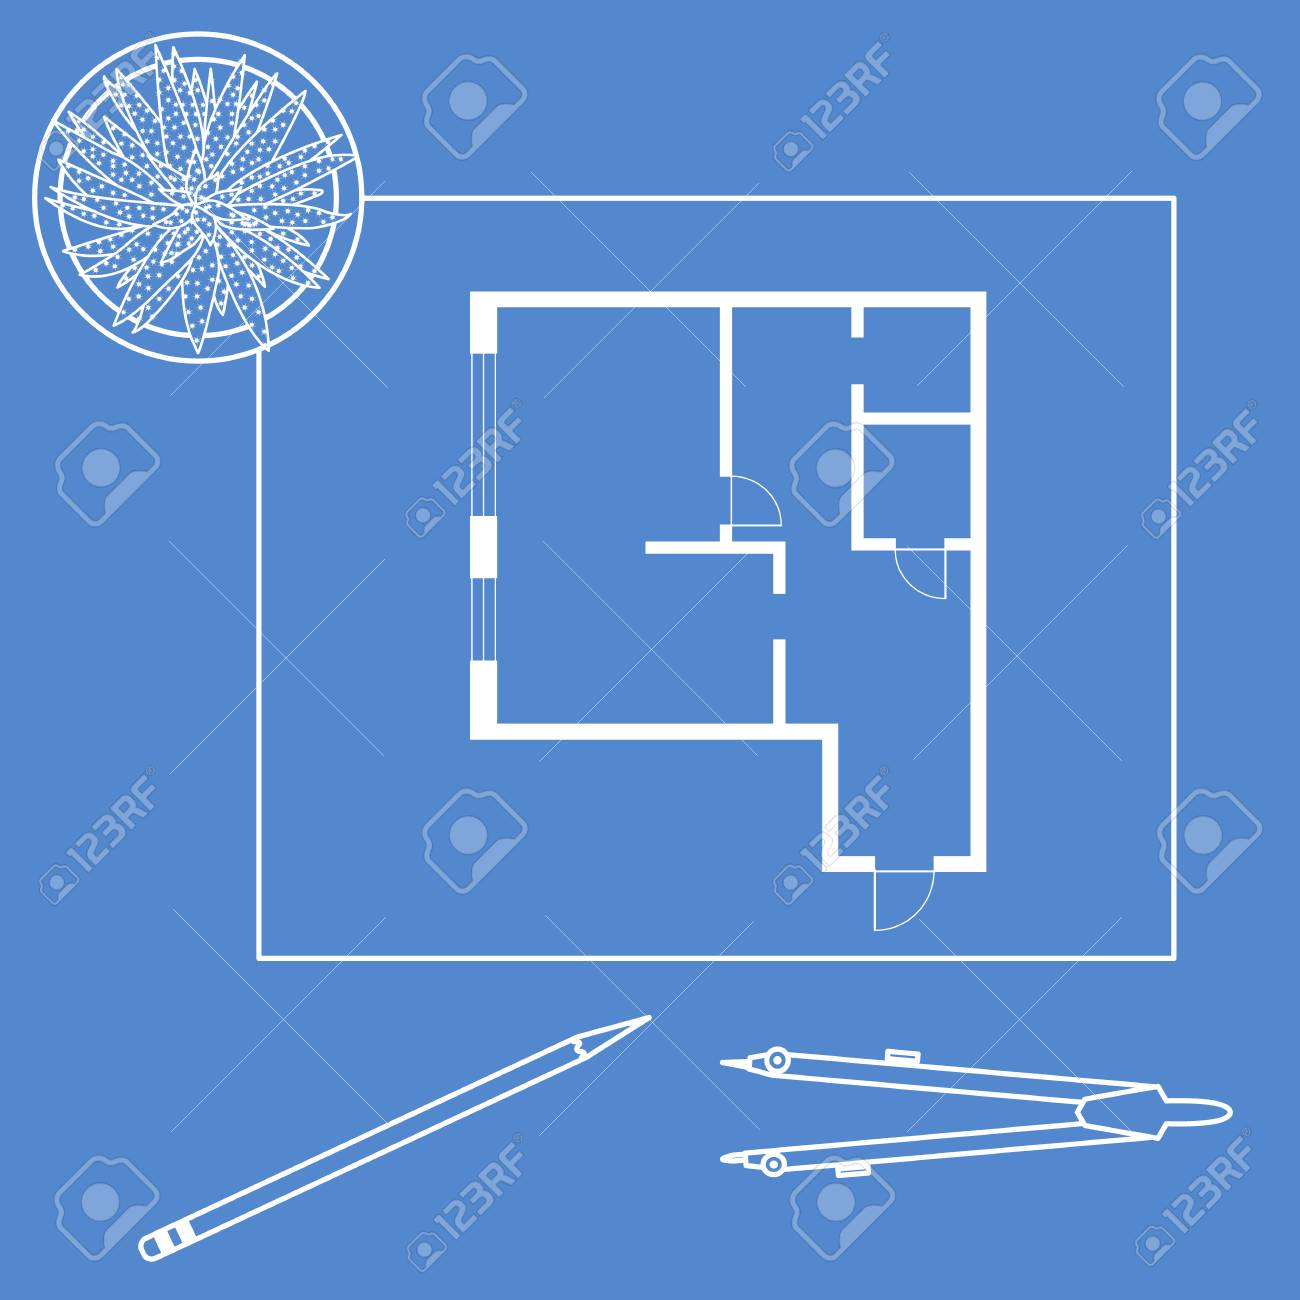 Vector illustration with apartment plan, compass, pencil, cactus. Architecture project. - 115416250